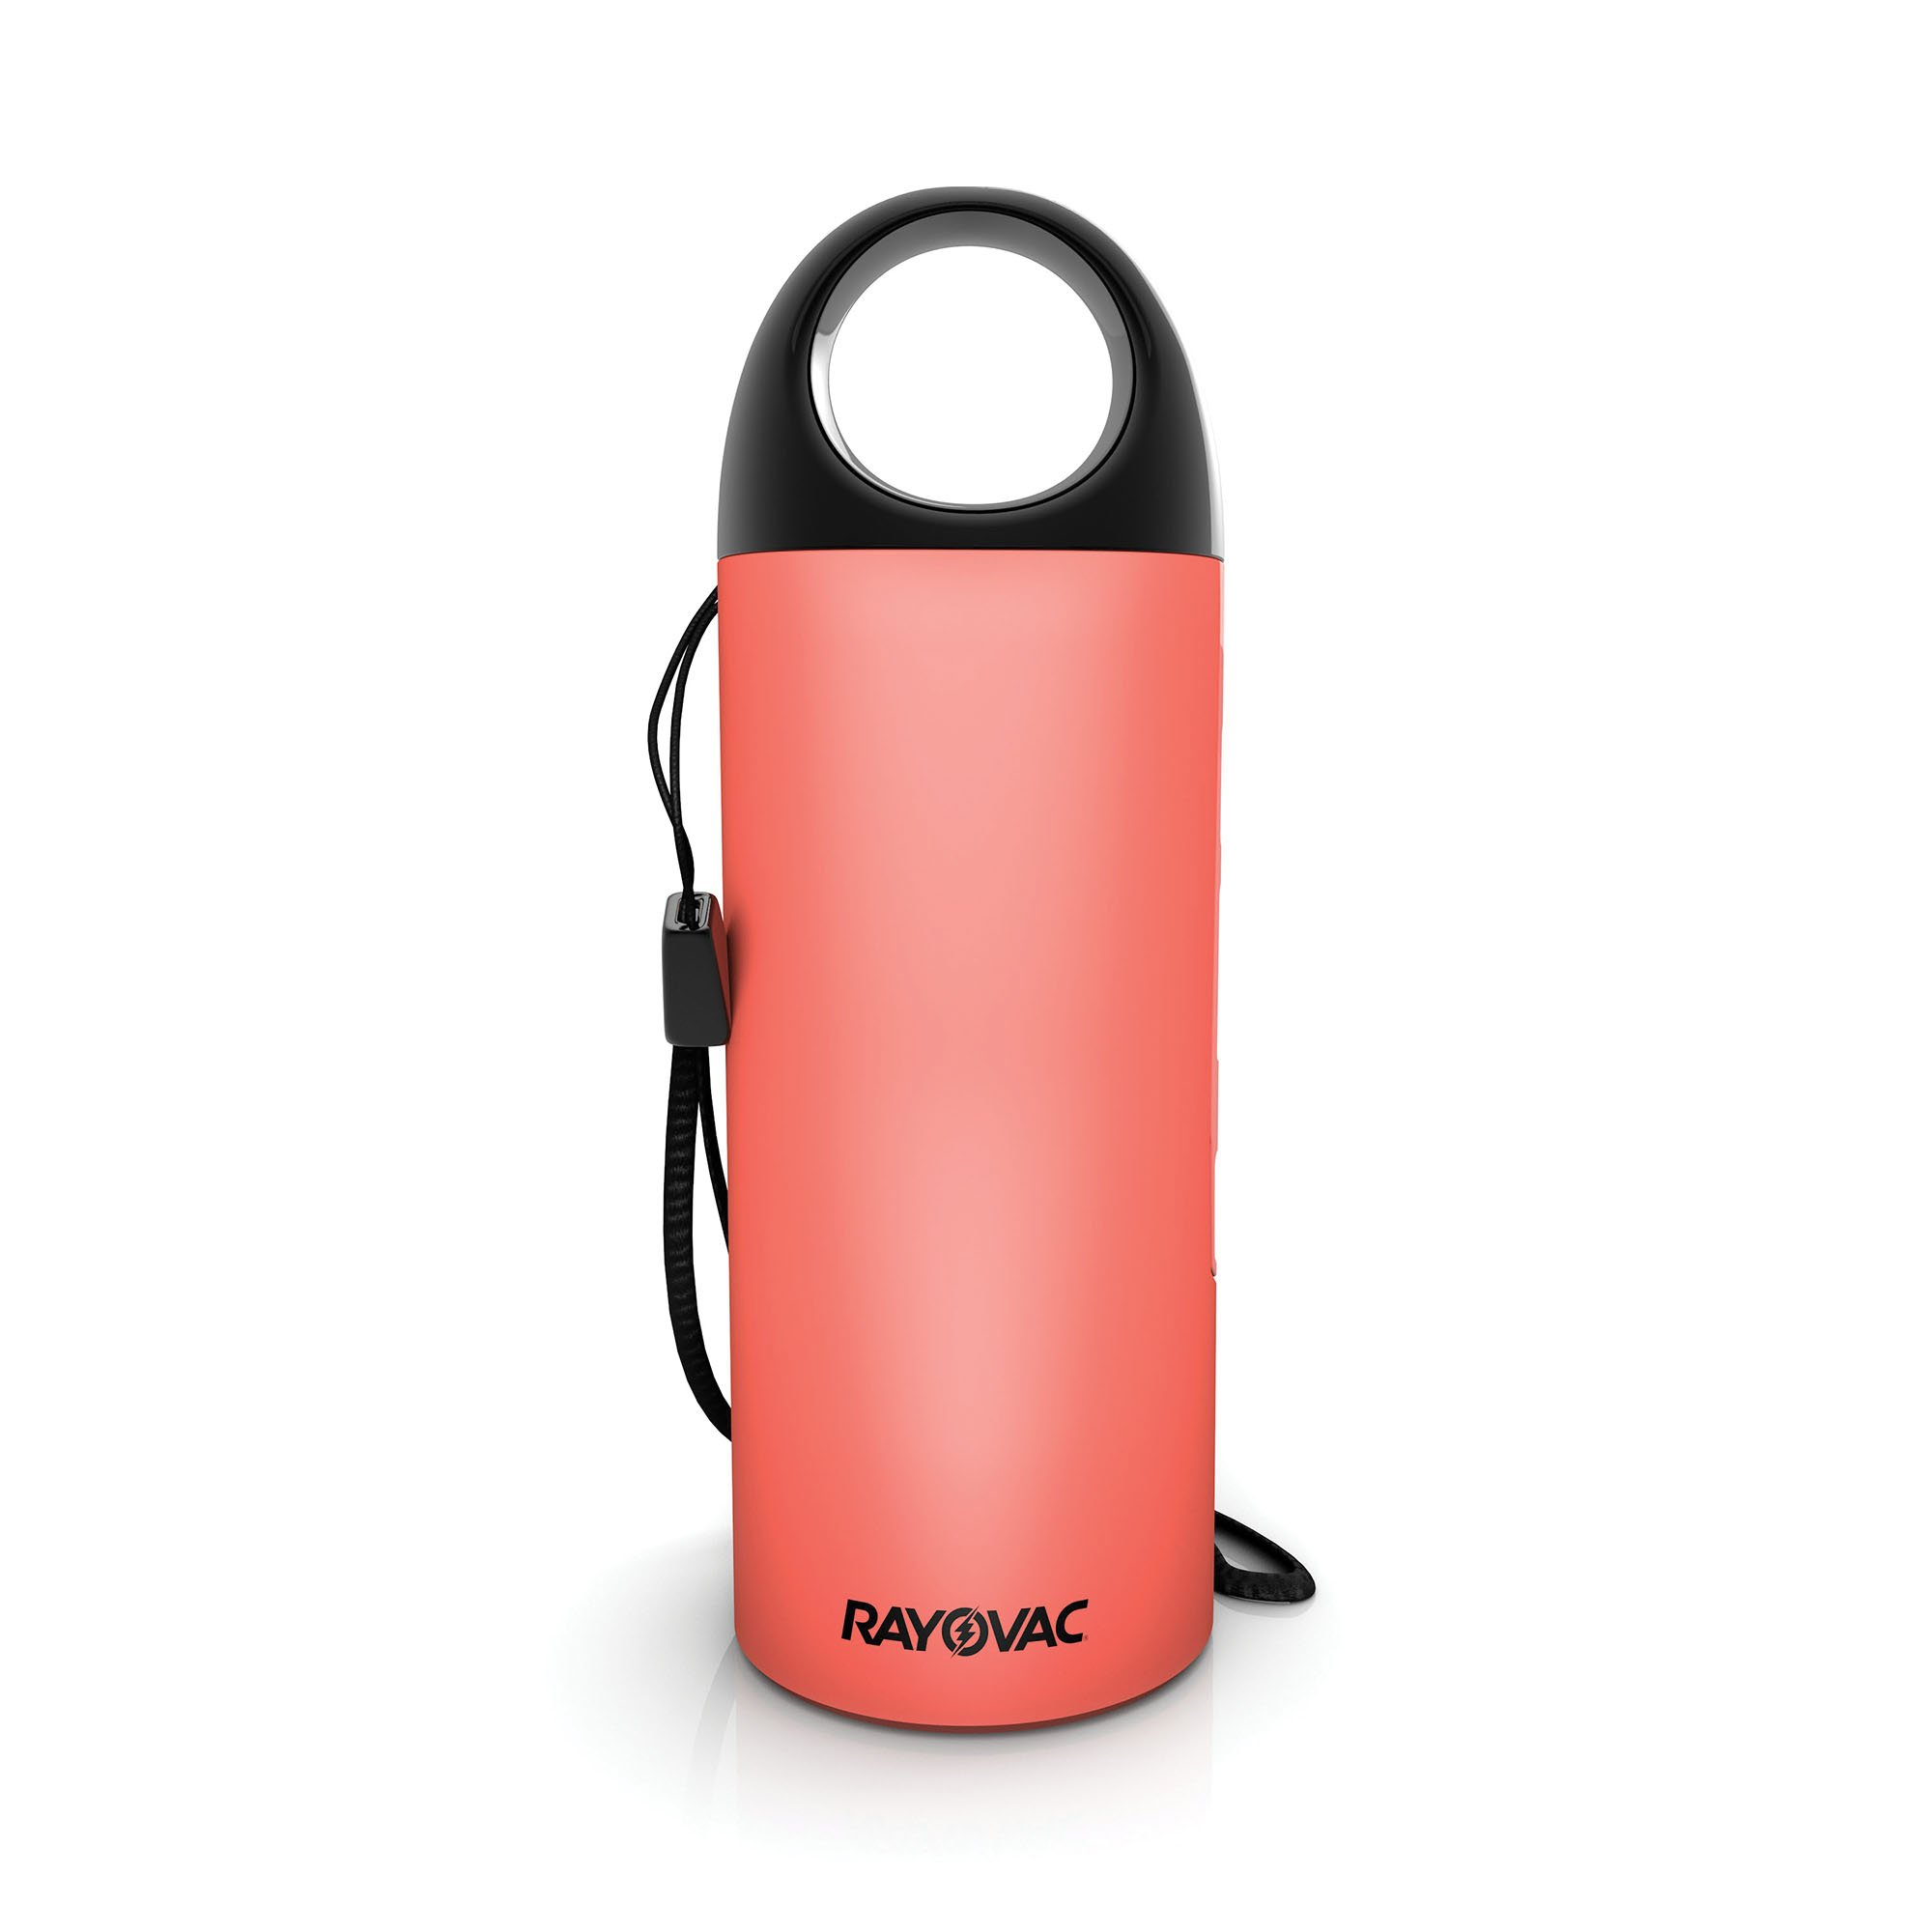 Rayovac Power Protect Safety Siren & Portable Charger, Coral, PS99CL by Rayovac (Image #1)